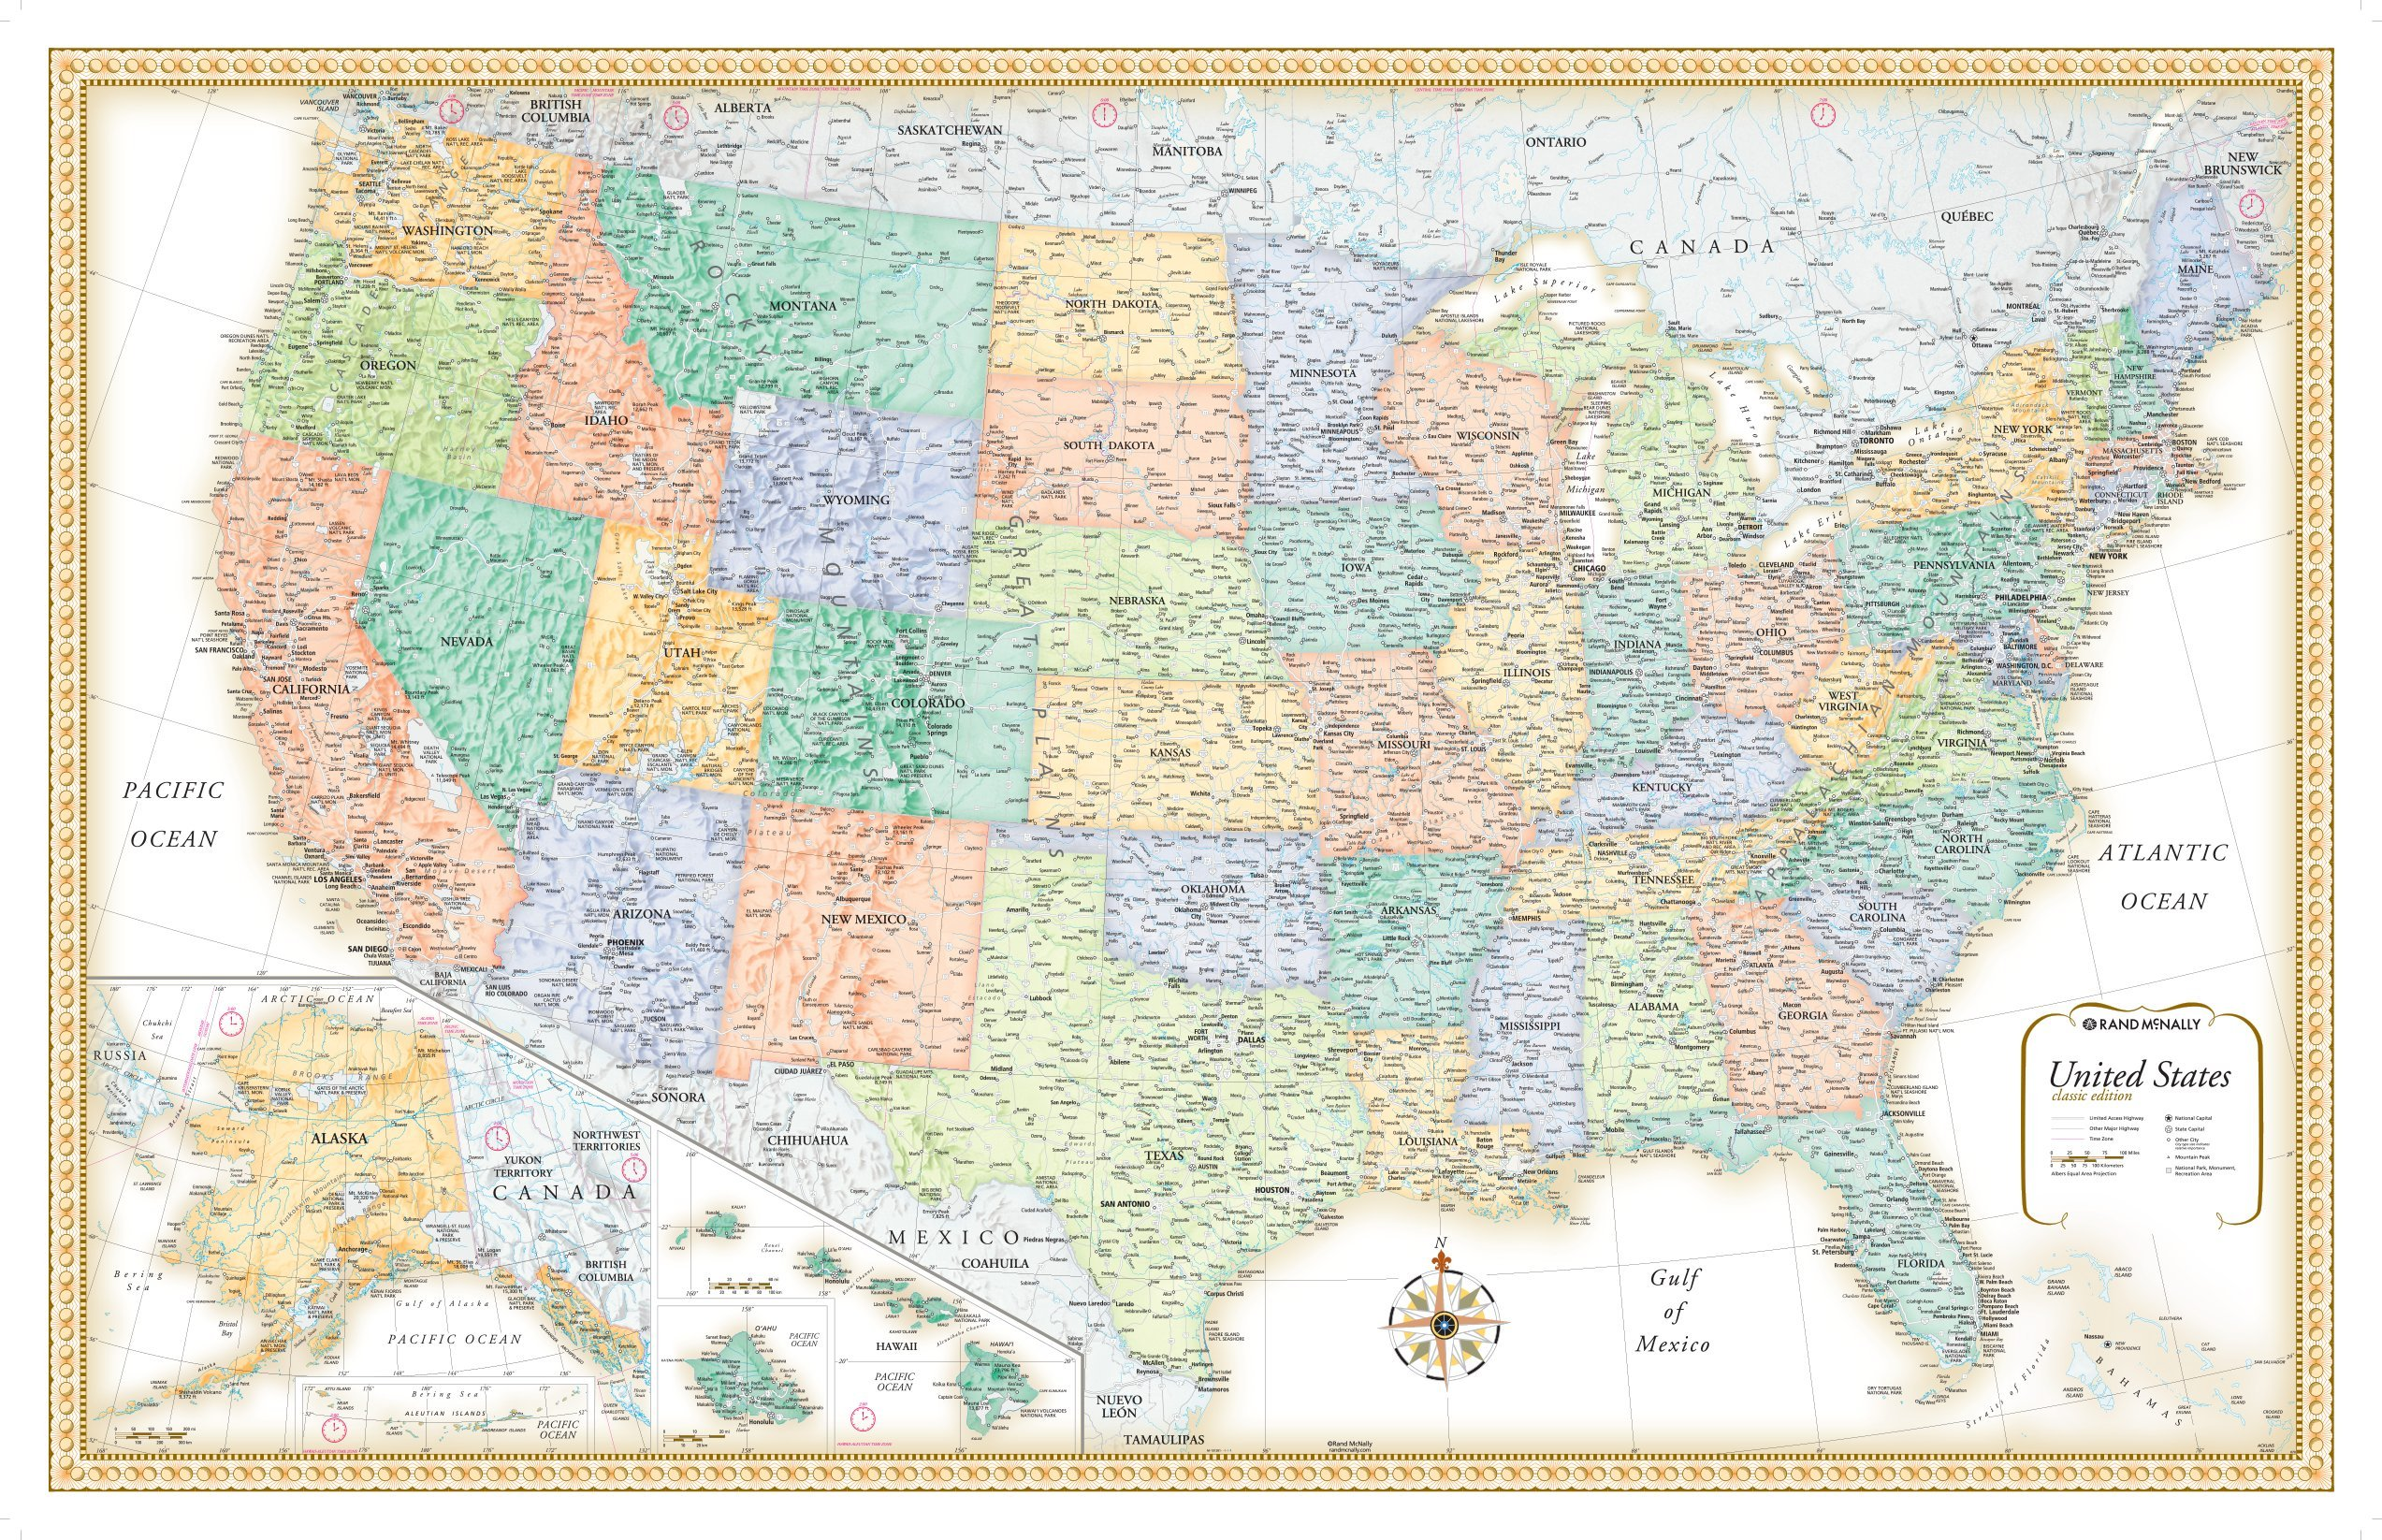 rand map in usa - 28 images - rand mcnally vintage united states map ...